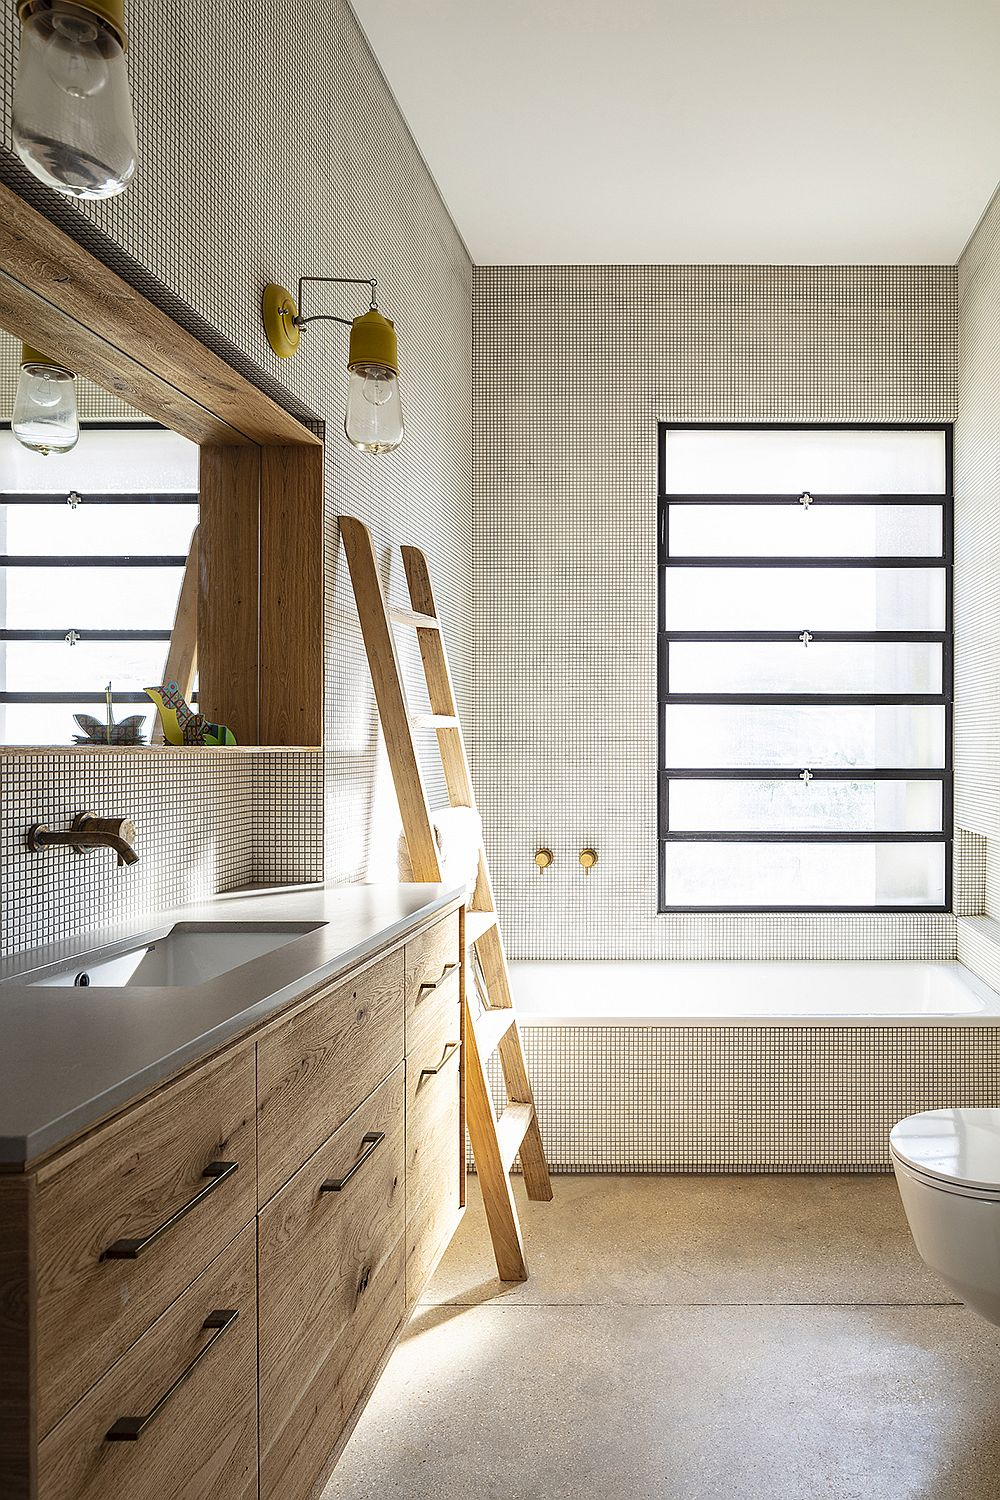 Light-filled modern bathroom in white and wood